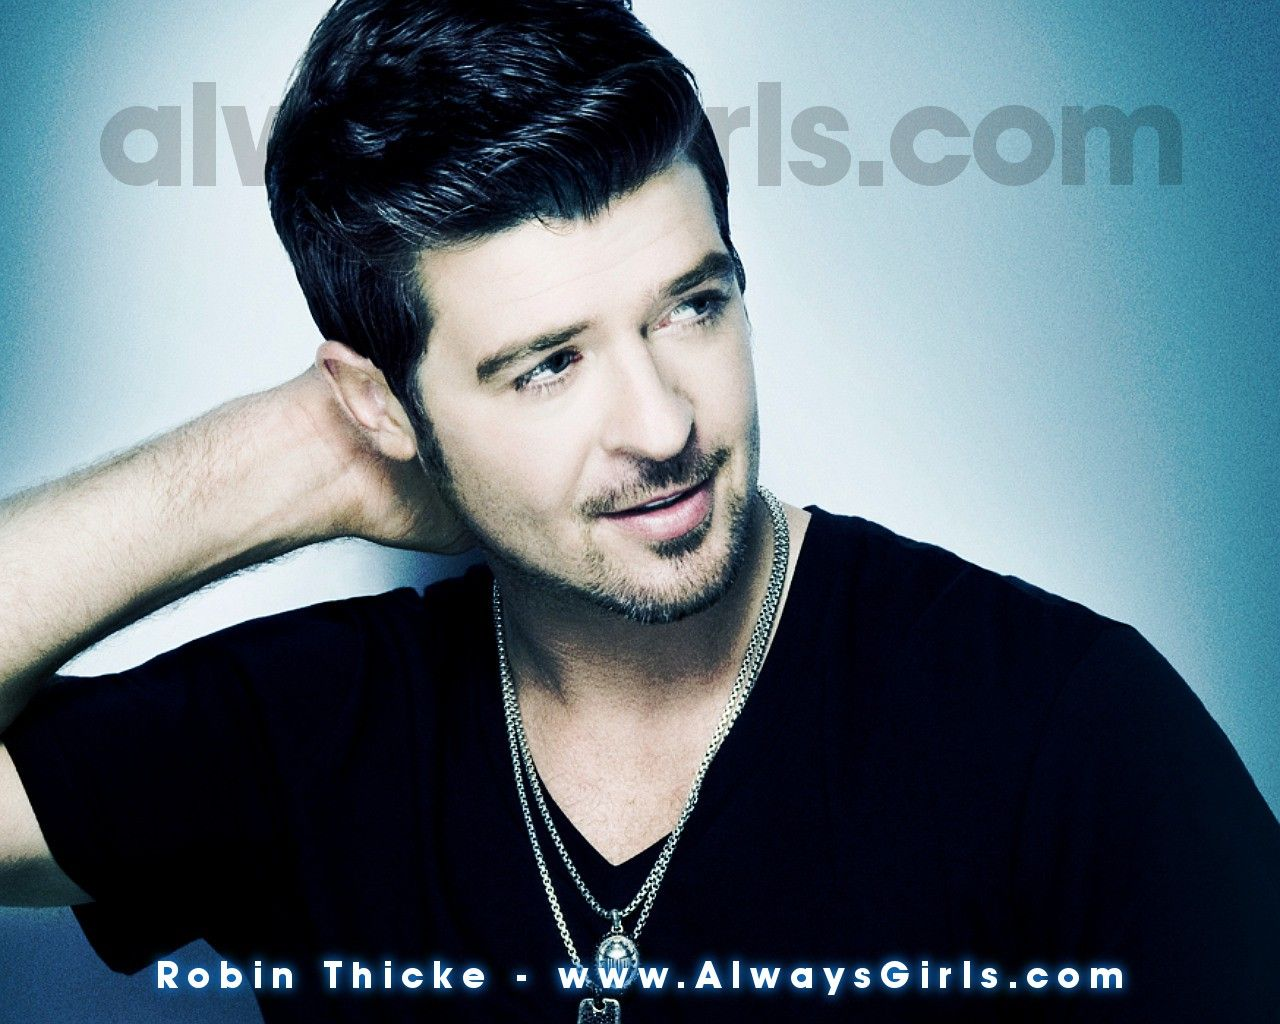 Gloria loring robin thicke robin thicke wallpaper celebs gloria loring robin thicke robin thicke wallpaper nvjuhfo Image collections